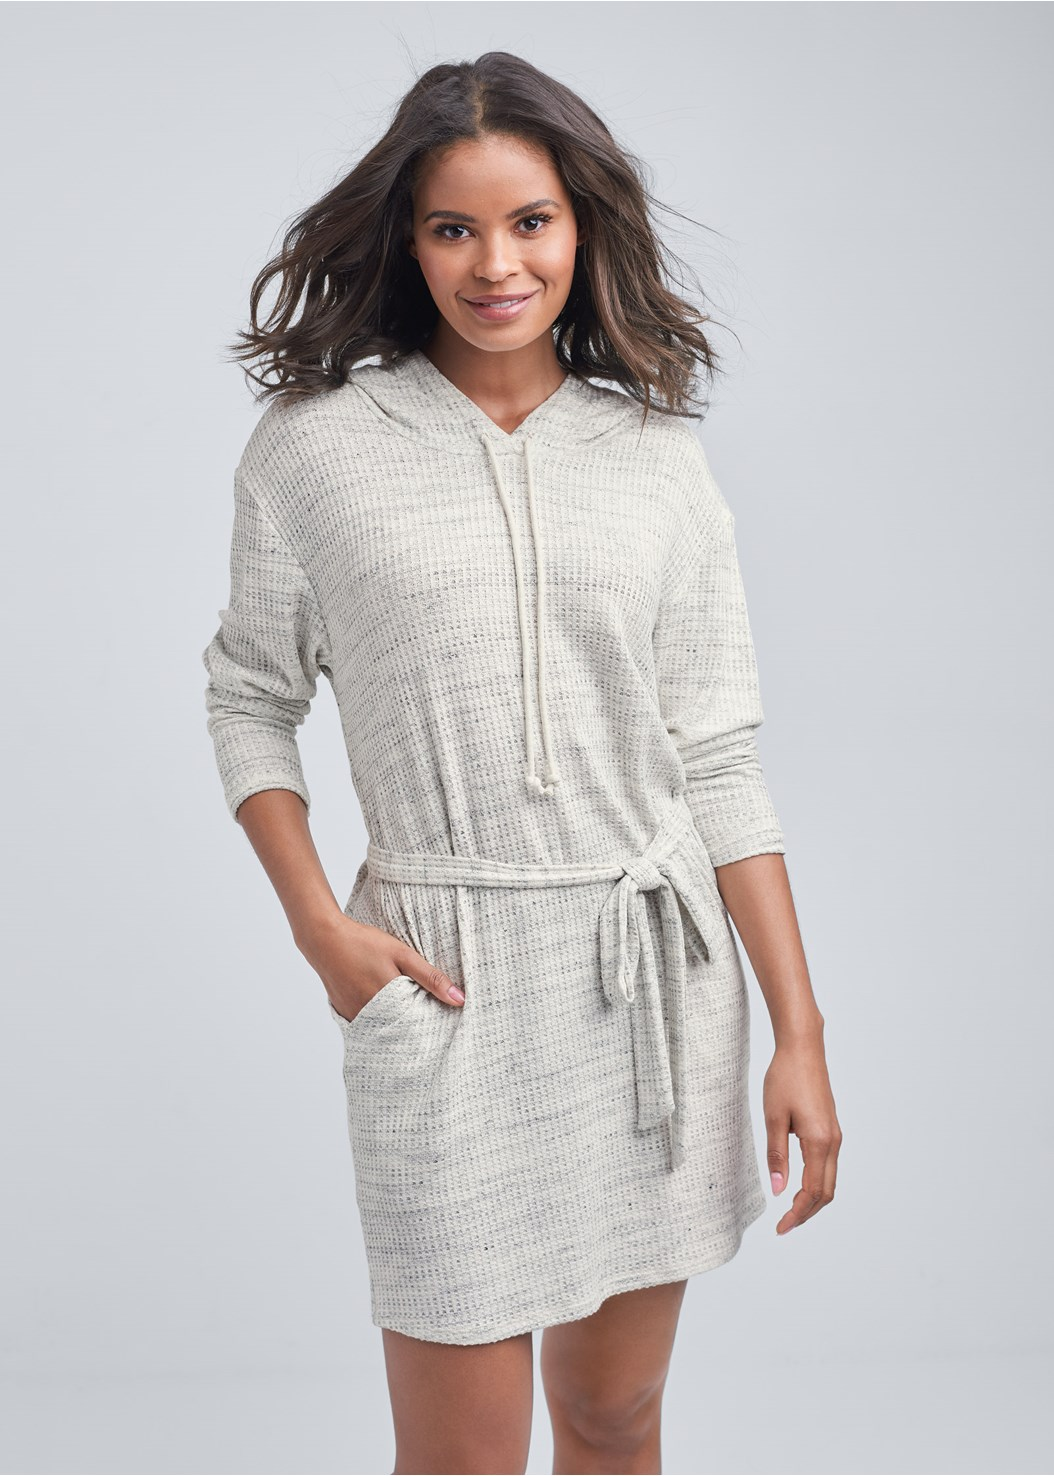 Cozy Waffle Knit Dress,Seamless Lace Comfort Bra